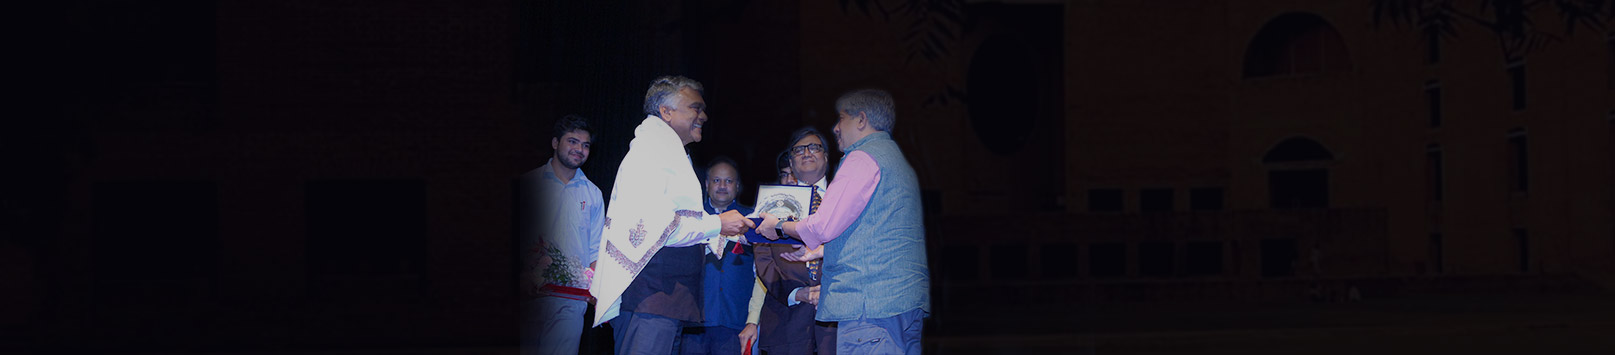 Harish Nim receiving his Distinguished Alumnus Award 2018 from Shrikrishna Kulkarni, Chairperson IIM Calcutta